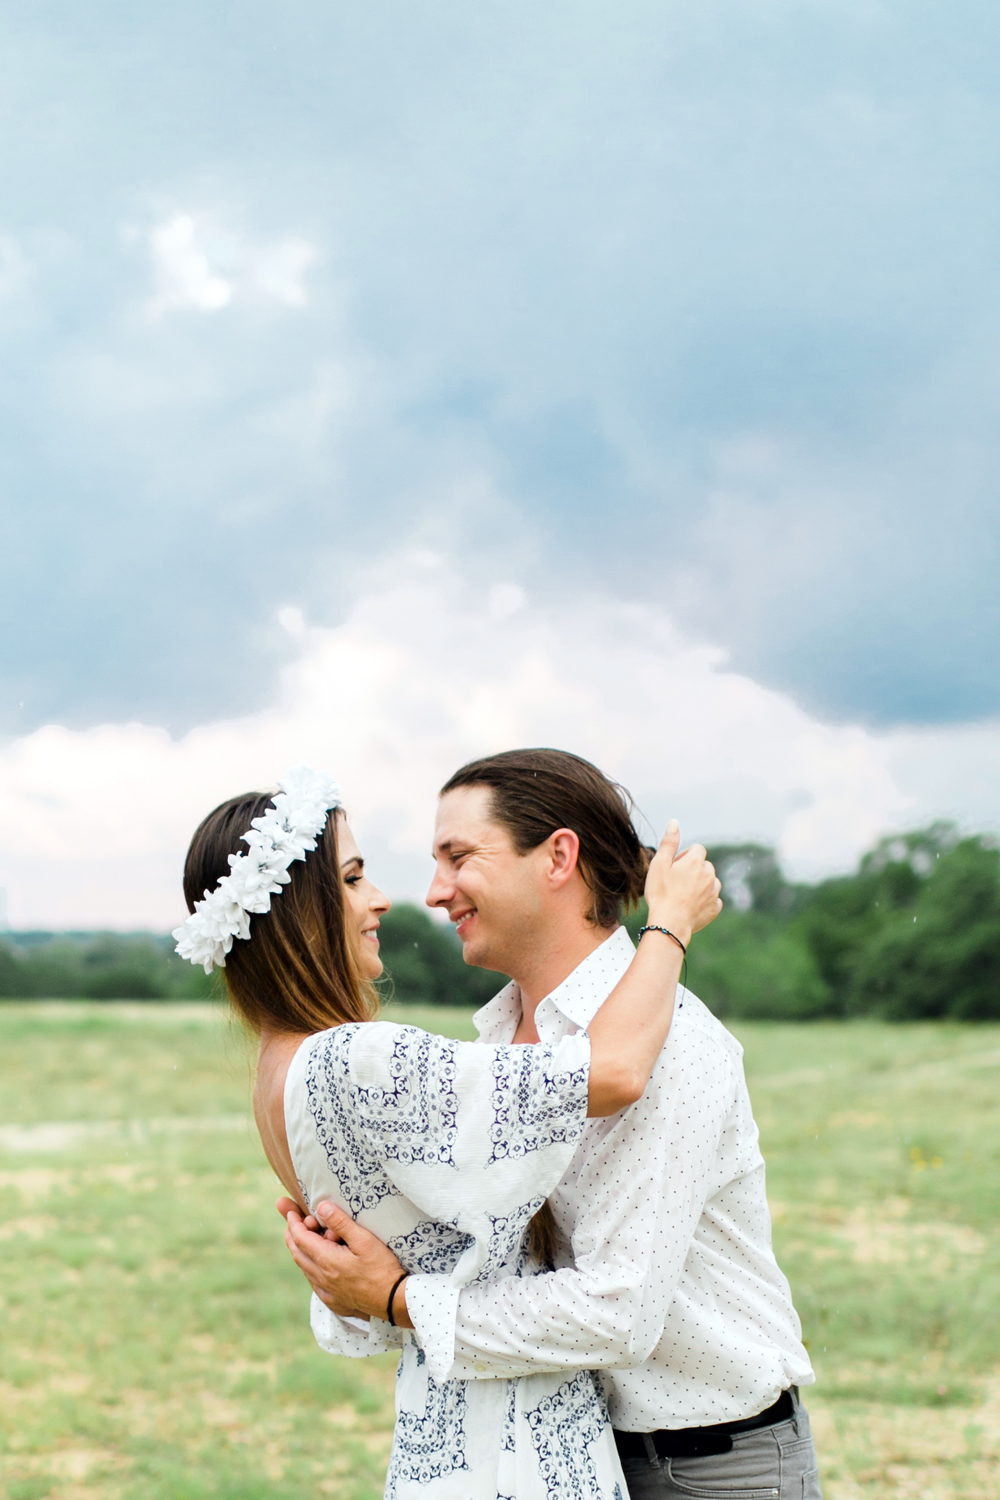 camp-lucy-boho-engagement-session-austin-texas-wedding-photographer-036.jpg